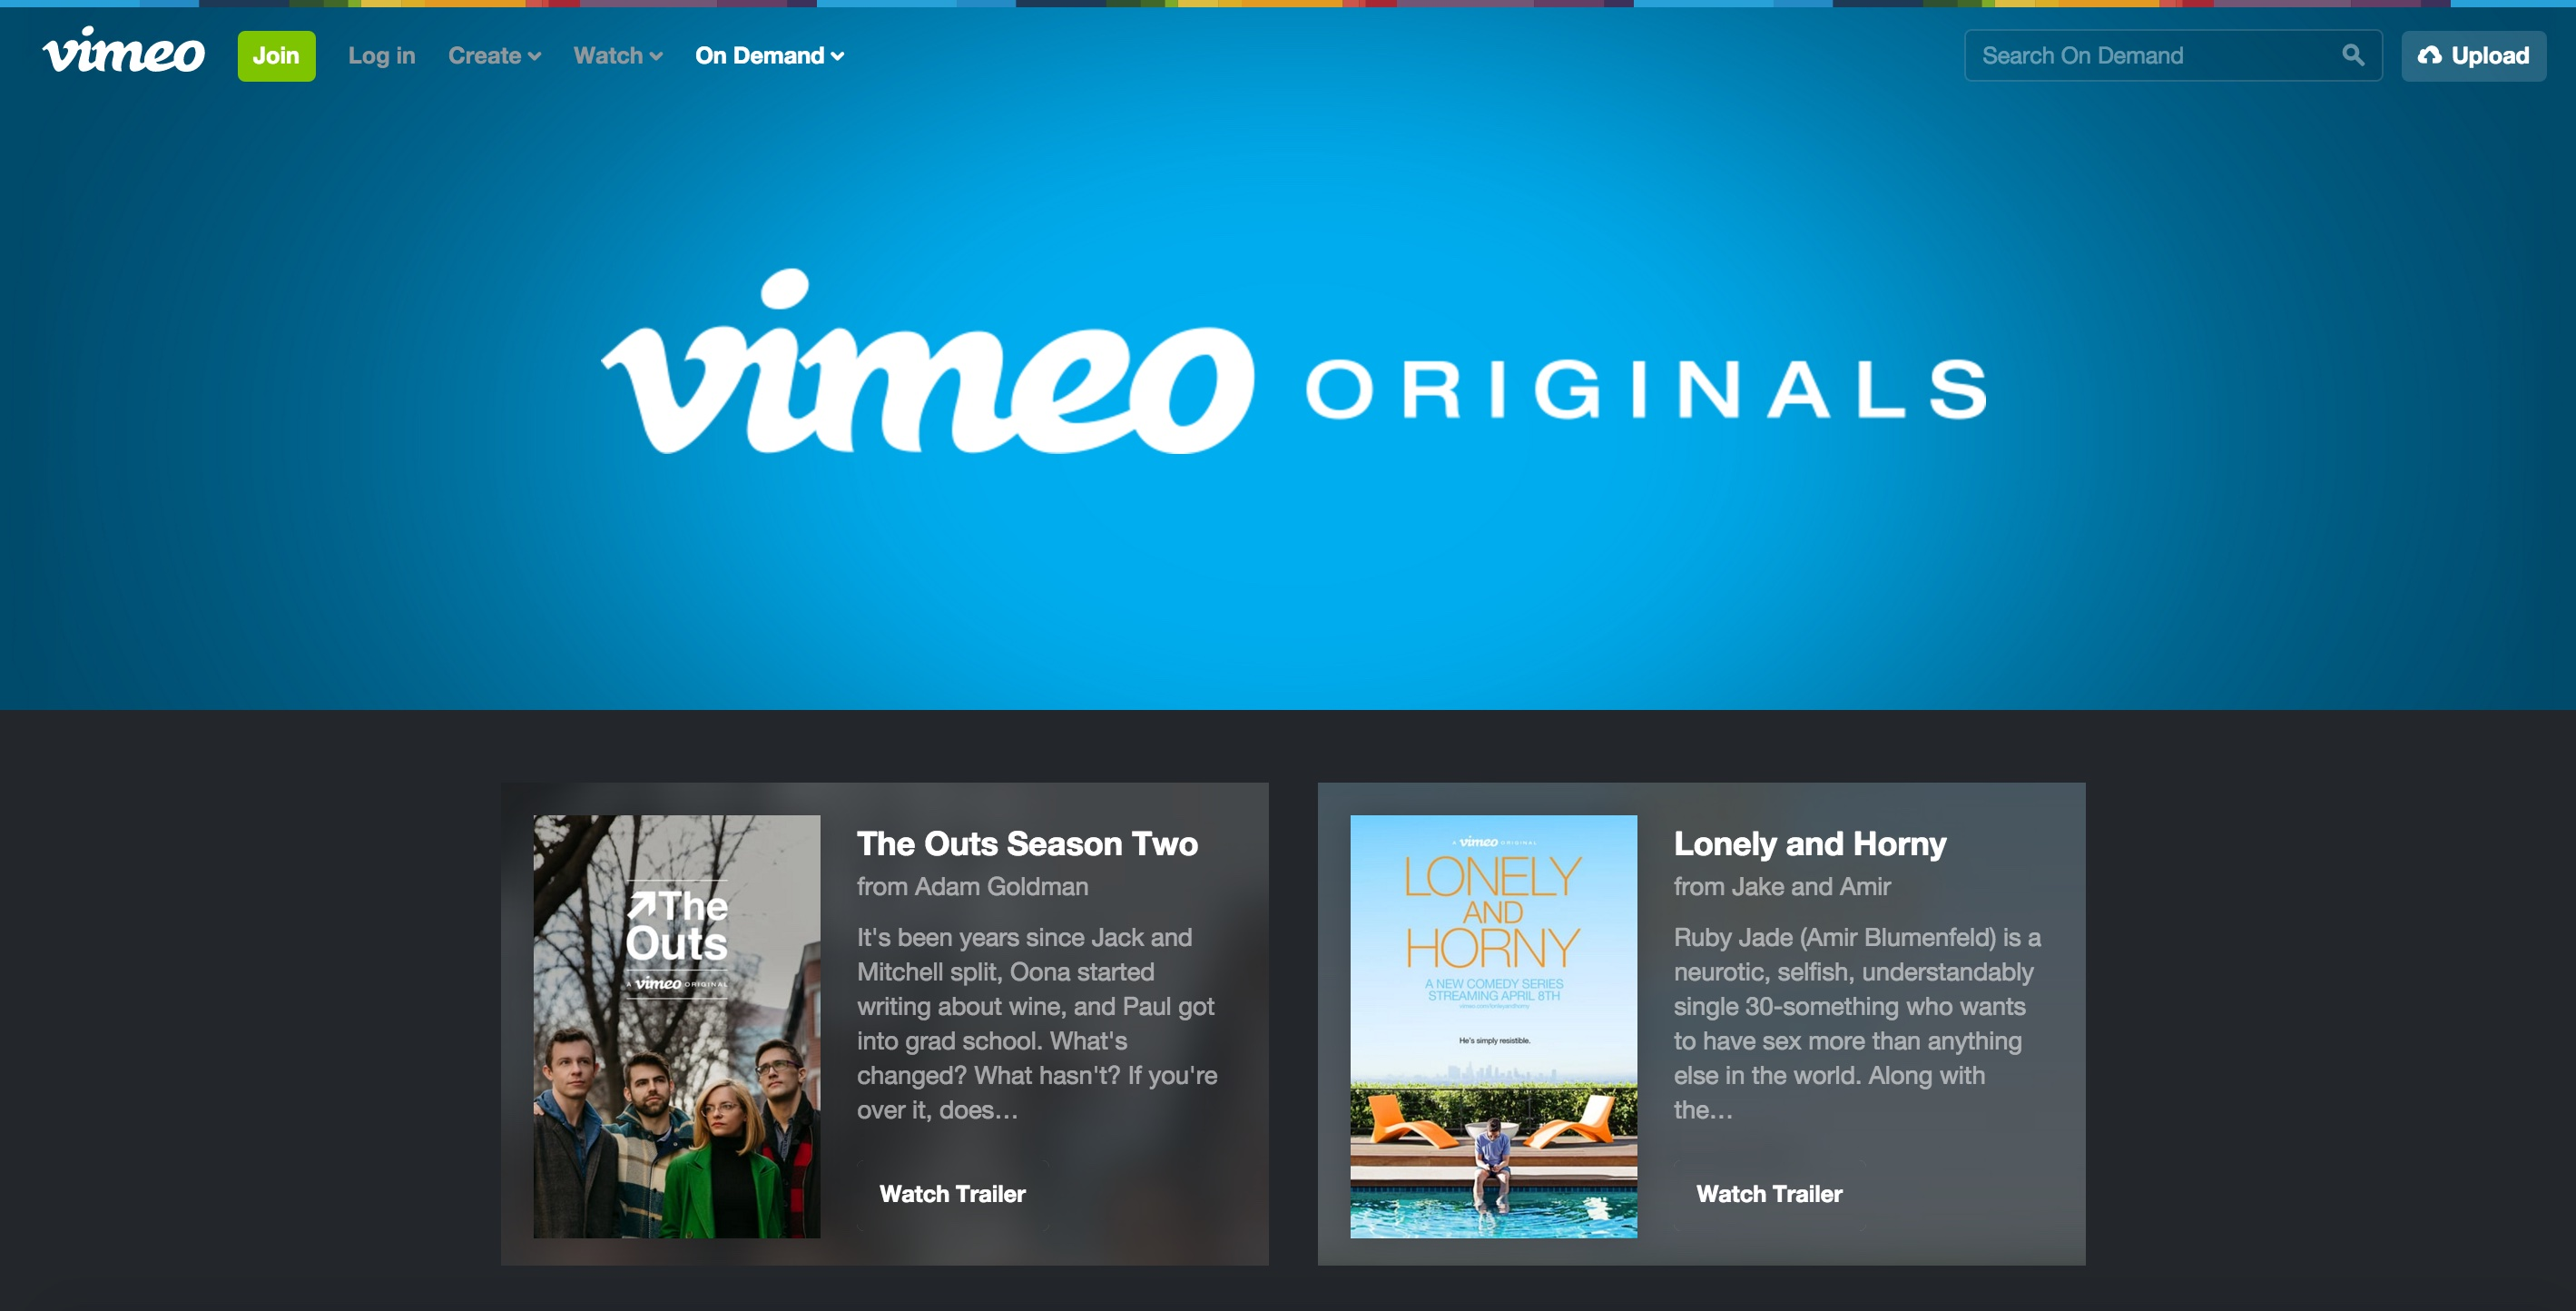 Vimeo Originals teaser